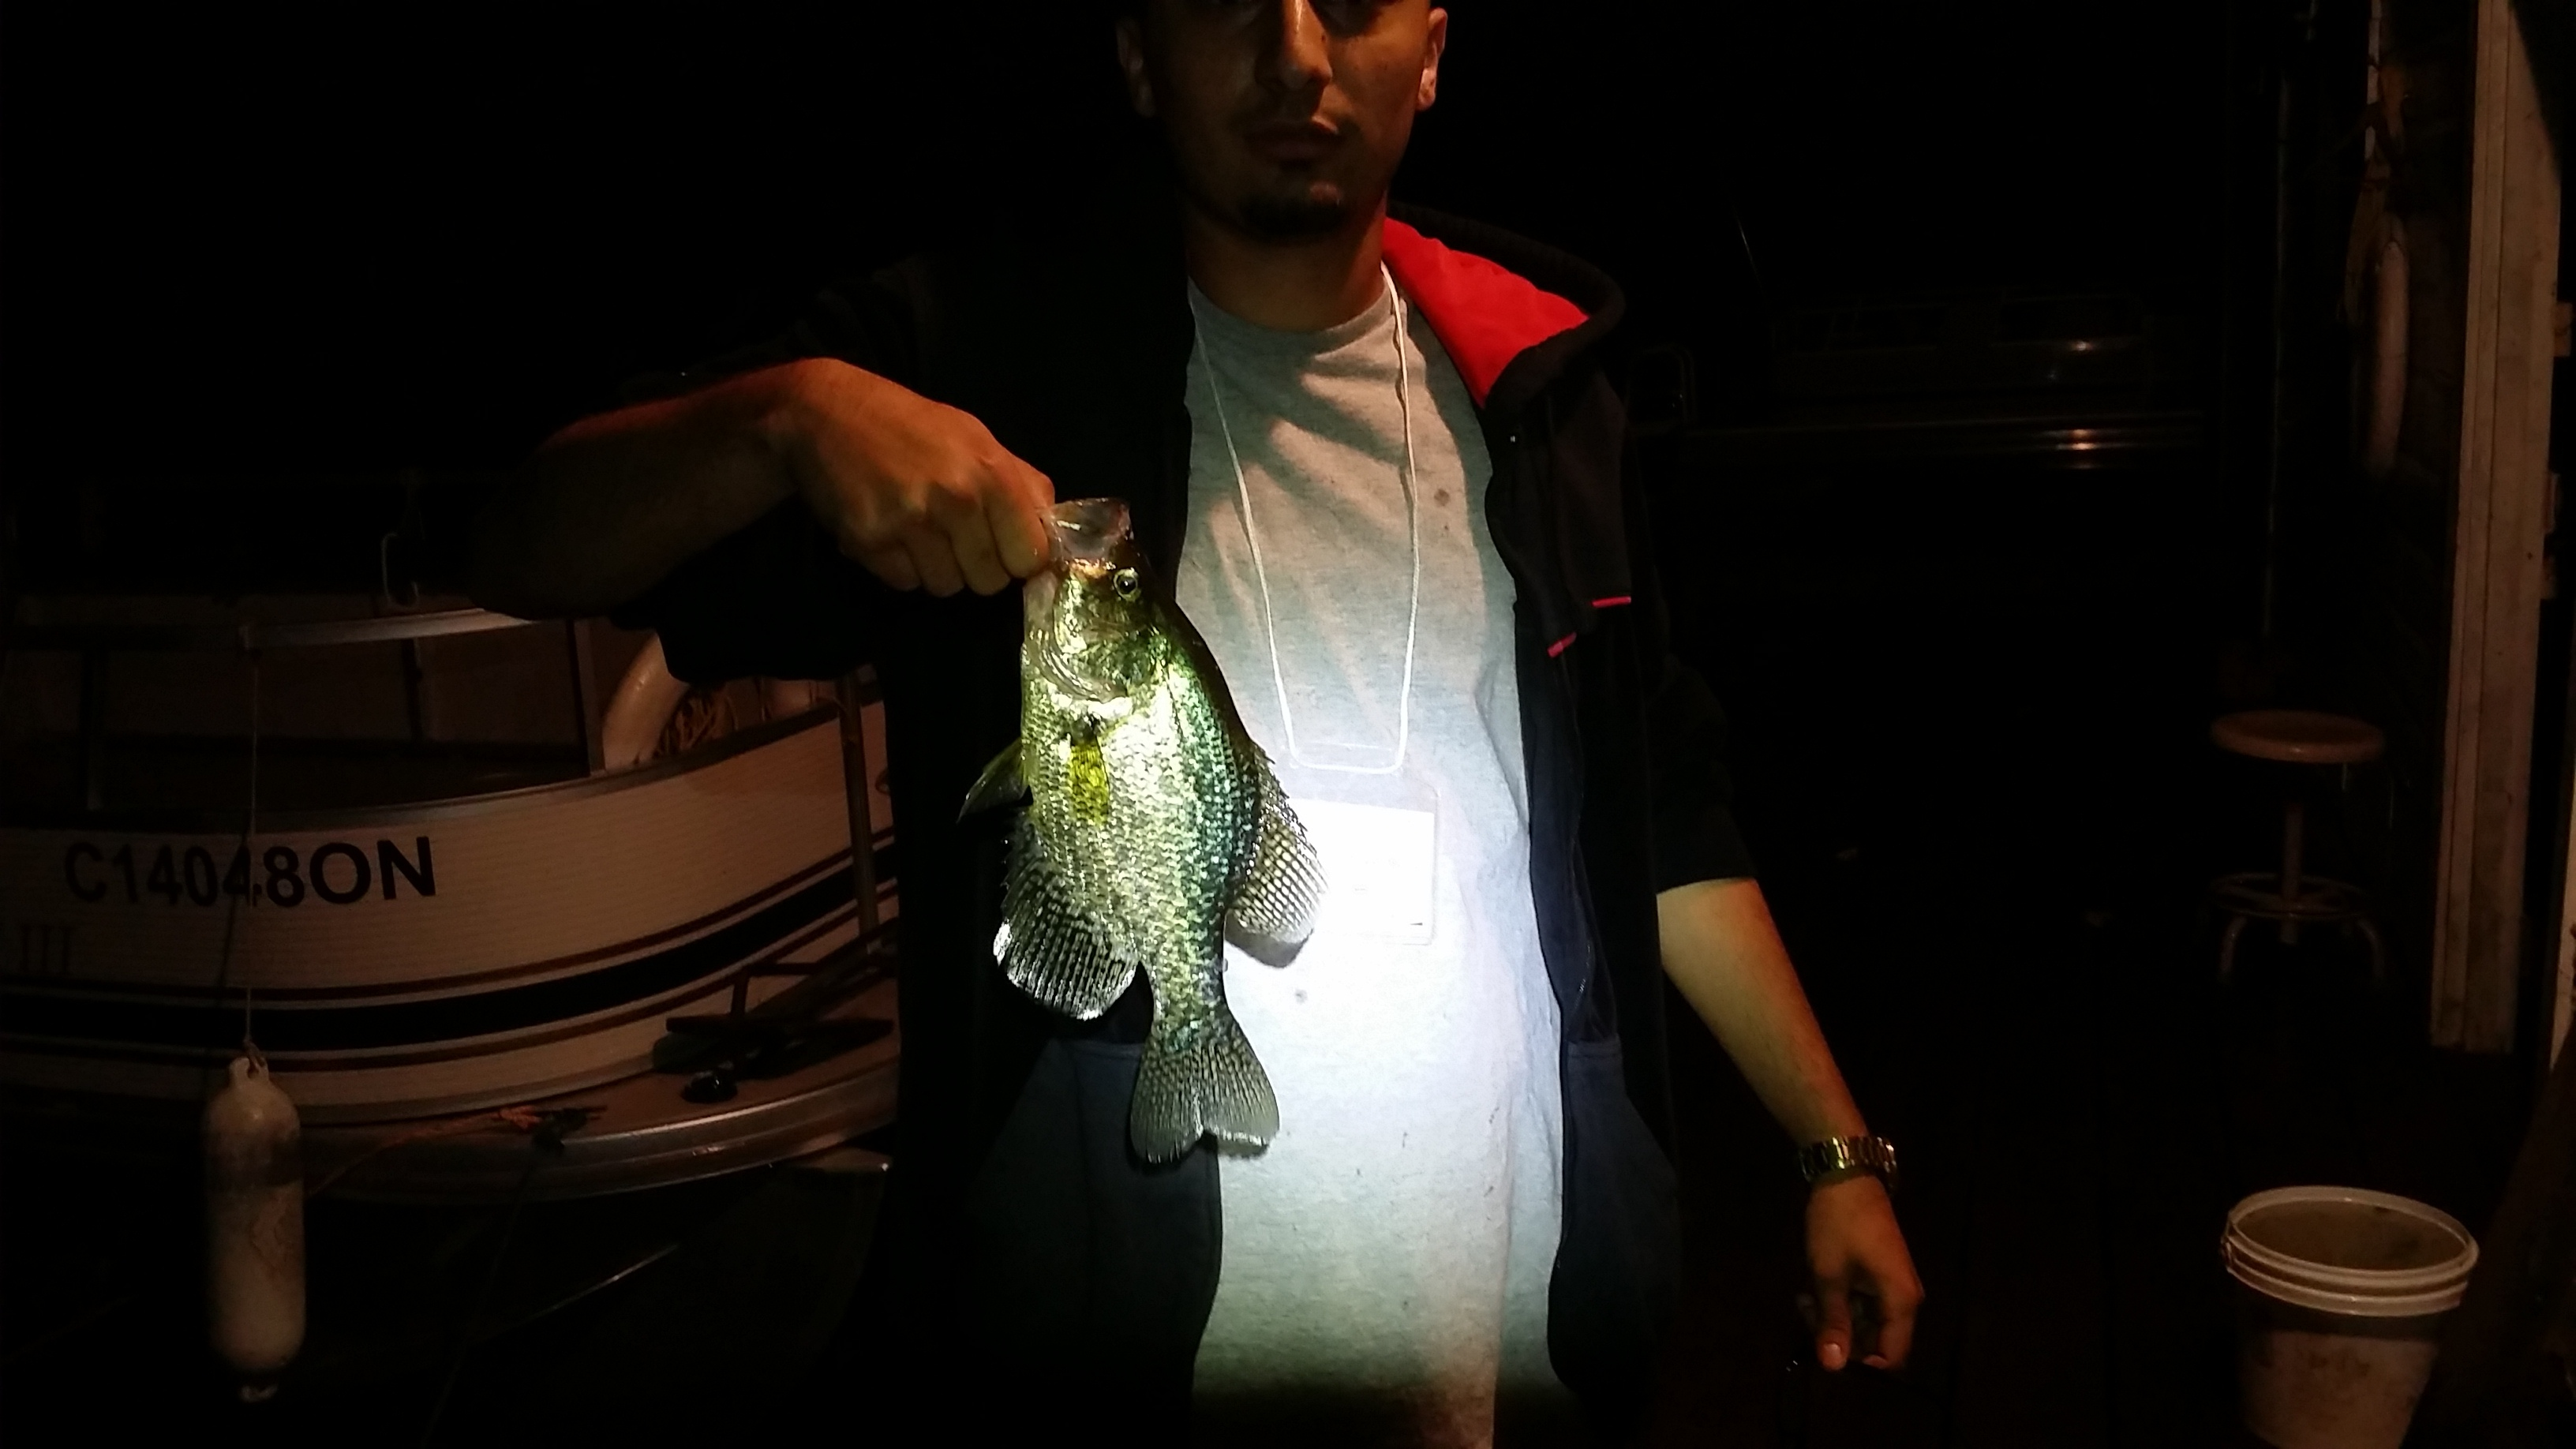 Late night crappie fishing thrill on for Crappie fishing at night